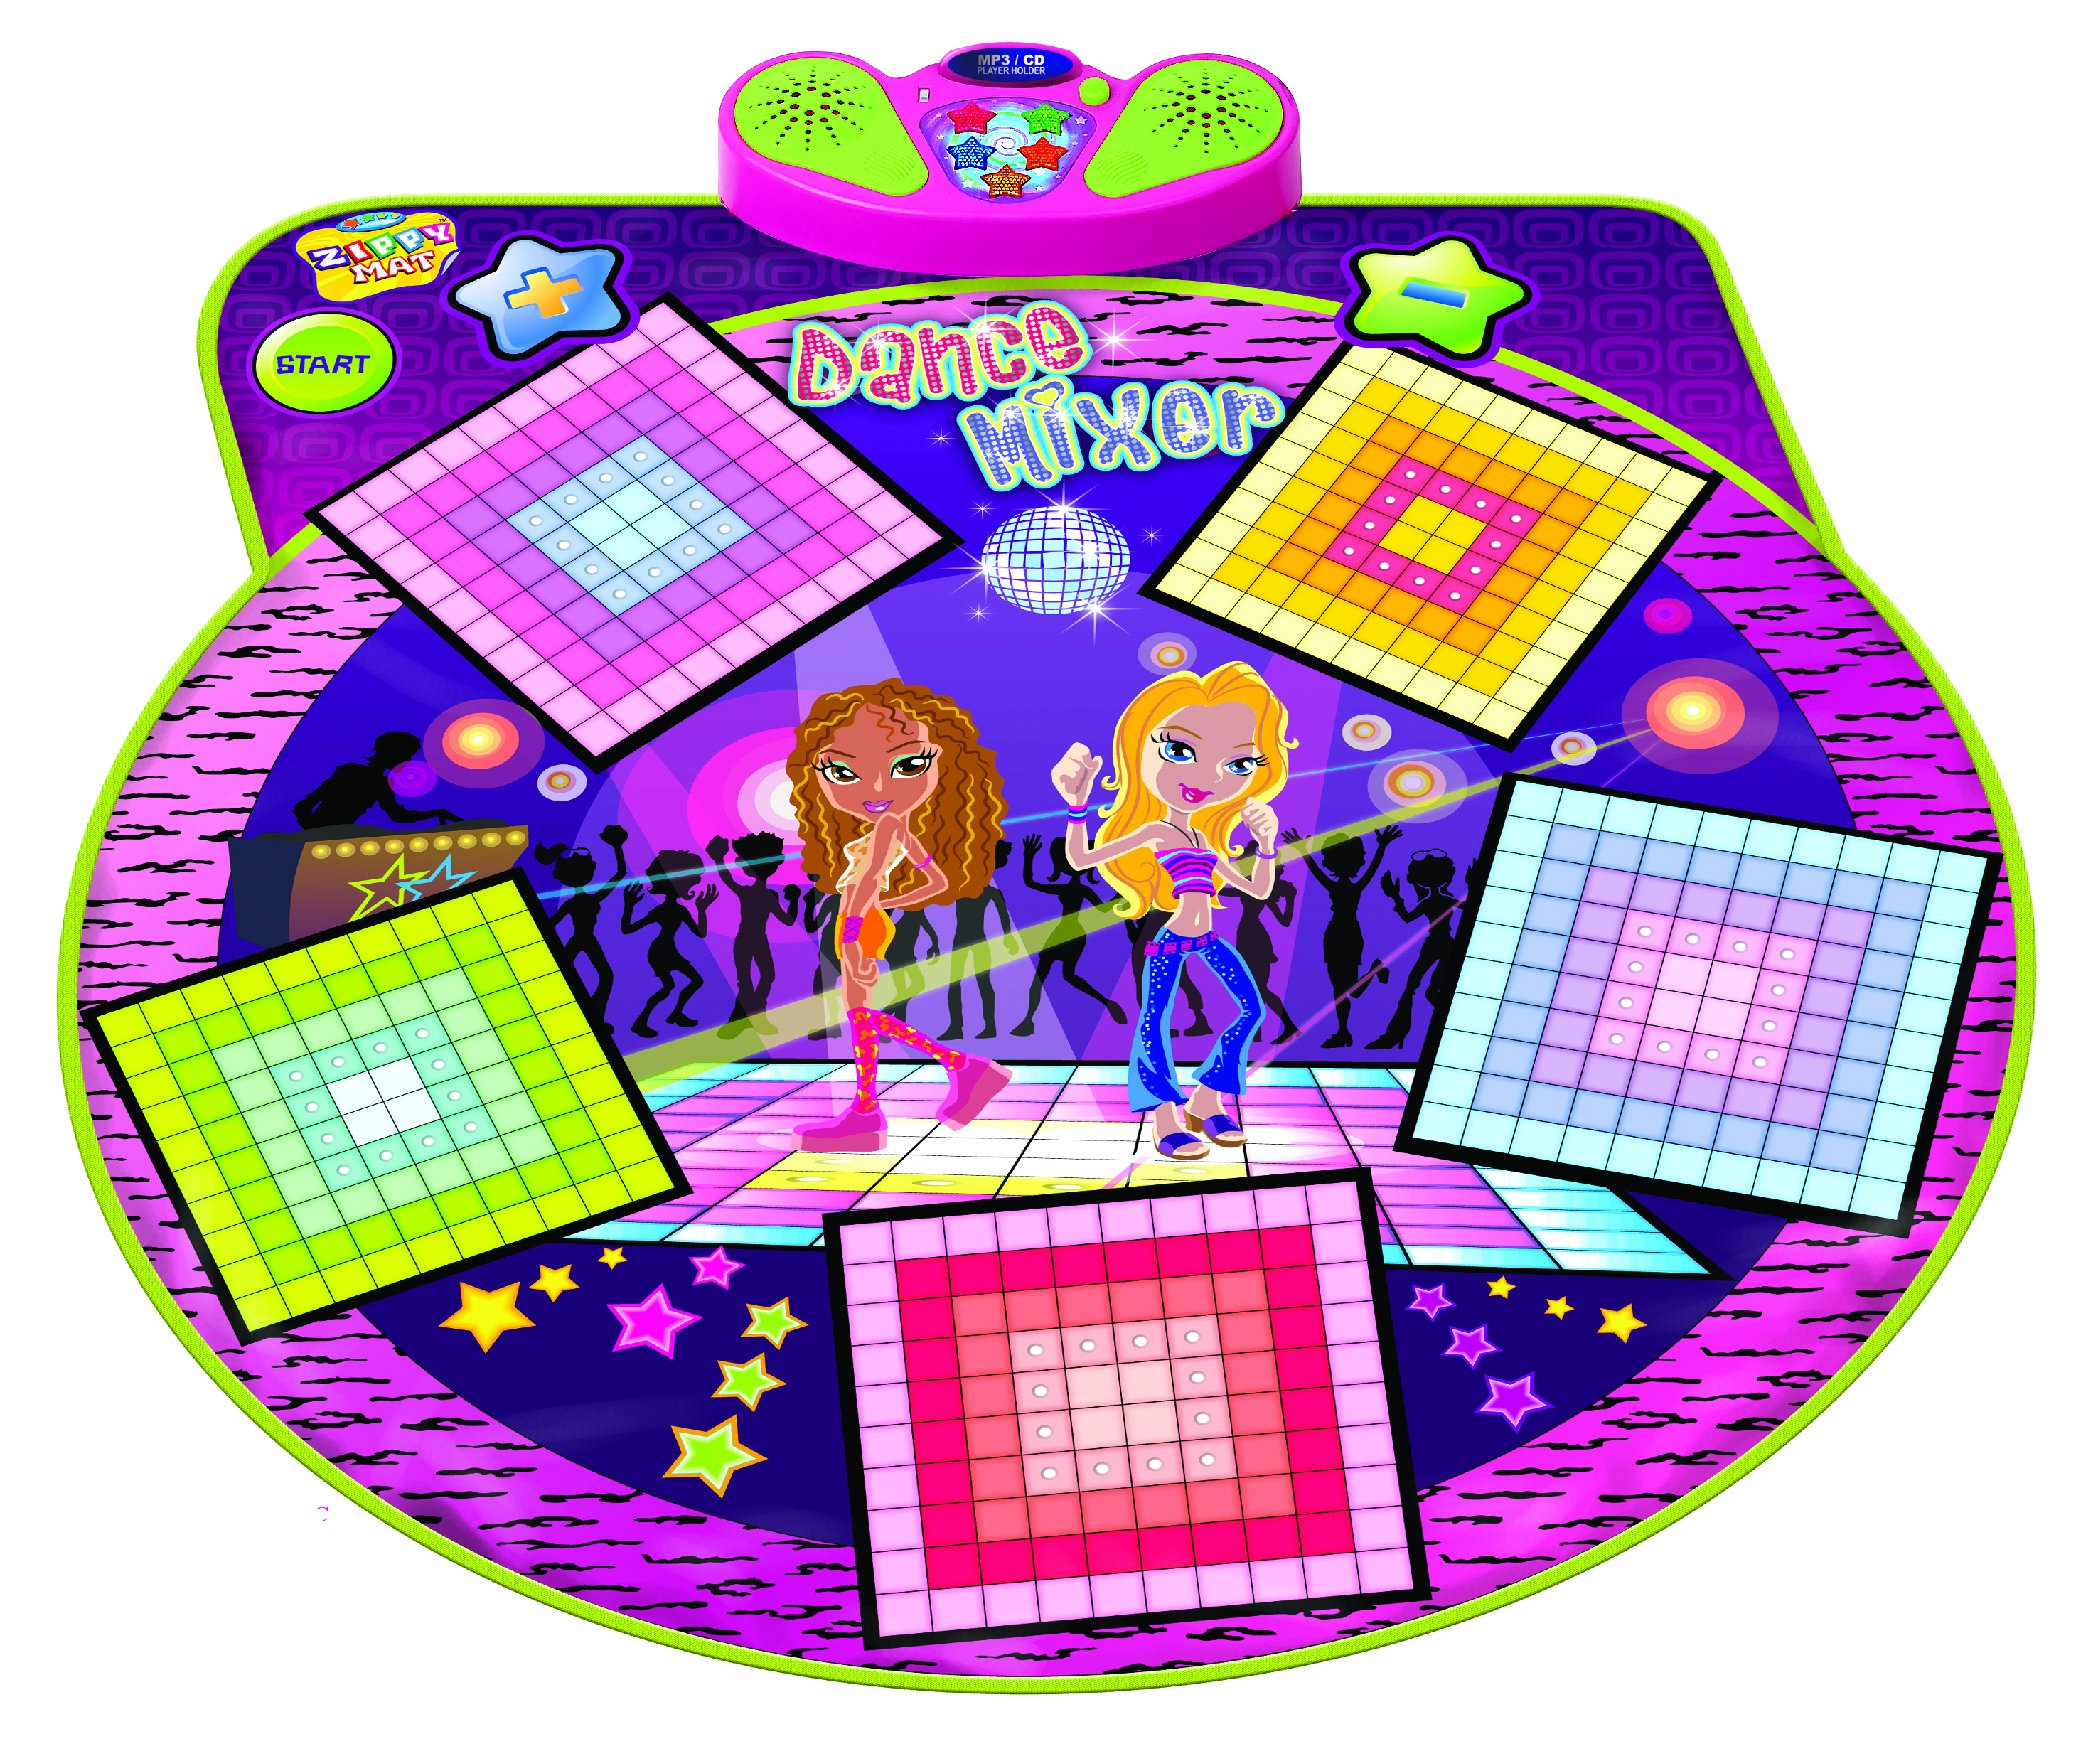 Playkids Kids@Play Dance Mat by Playkids (Image #1)